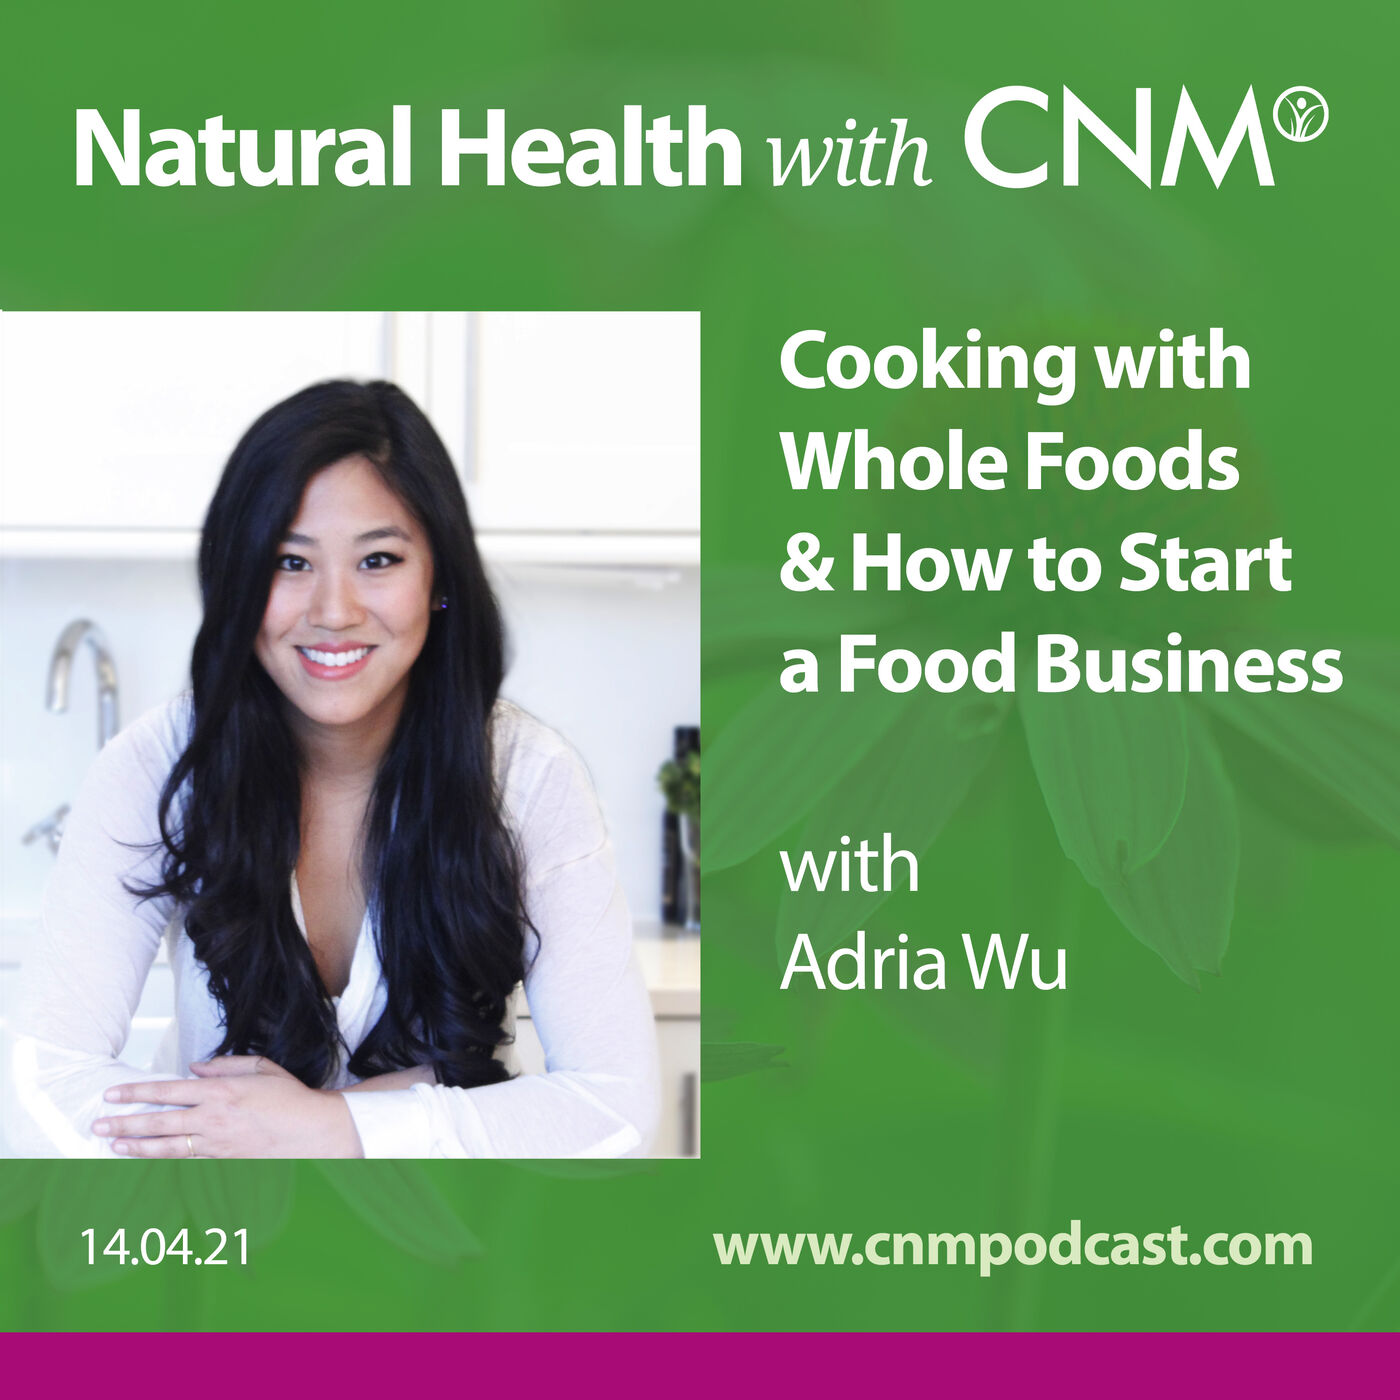 Cooking with Whole Foods & How to Start a Food Business with Adria Wu